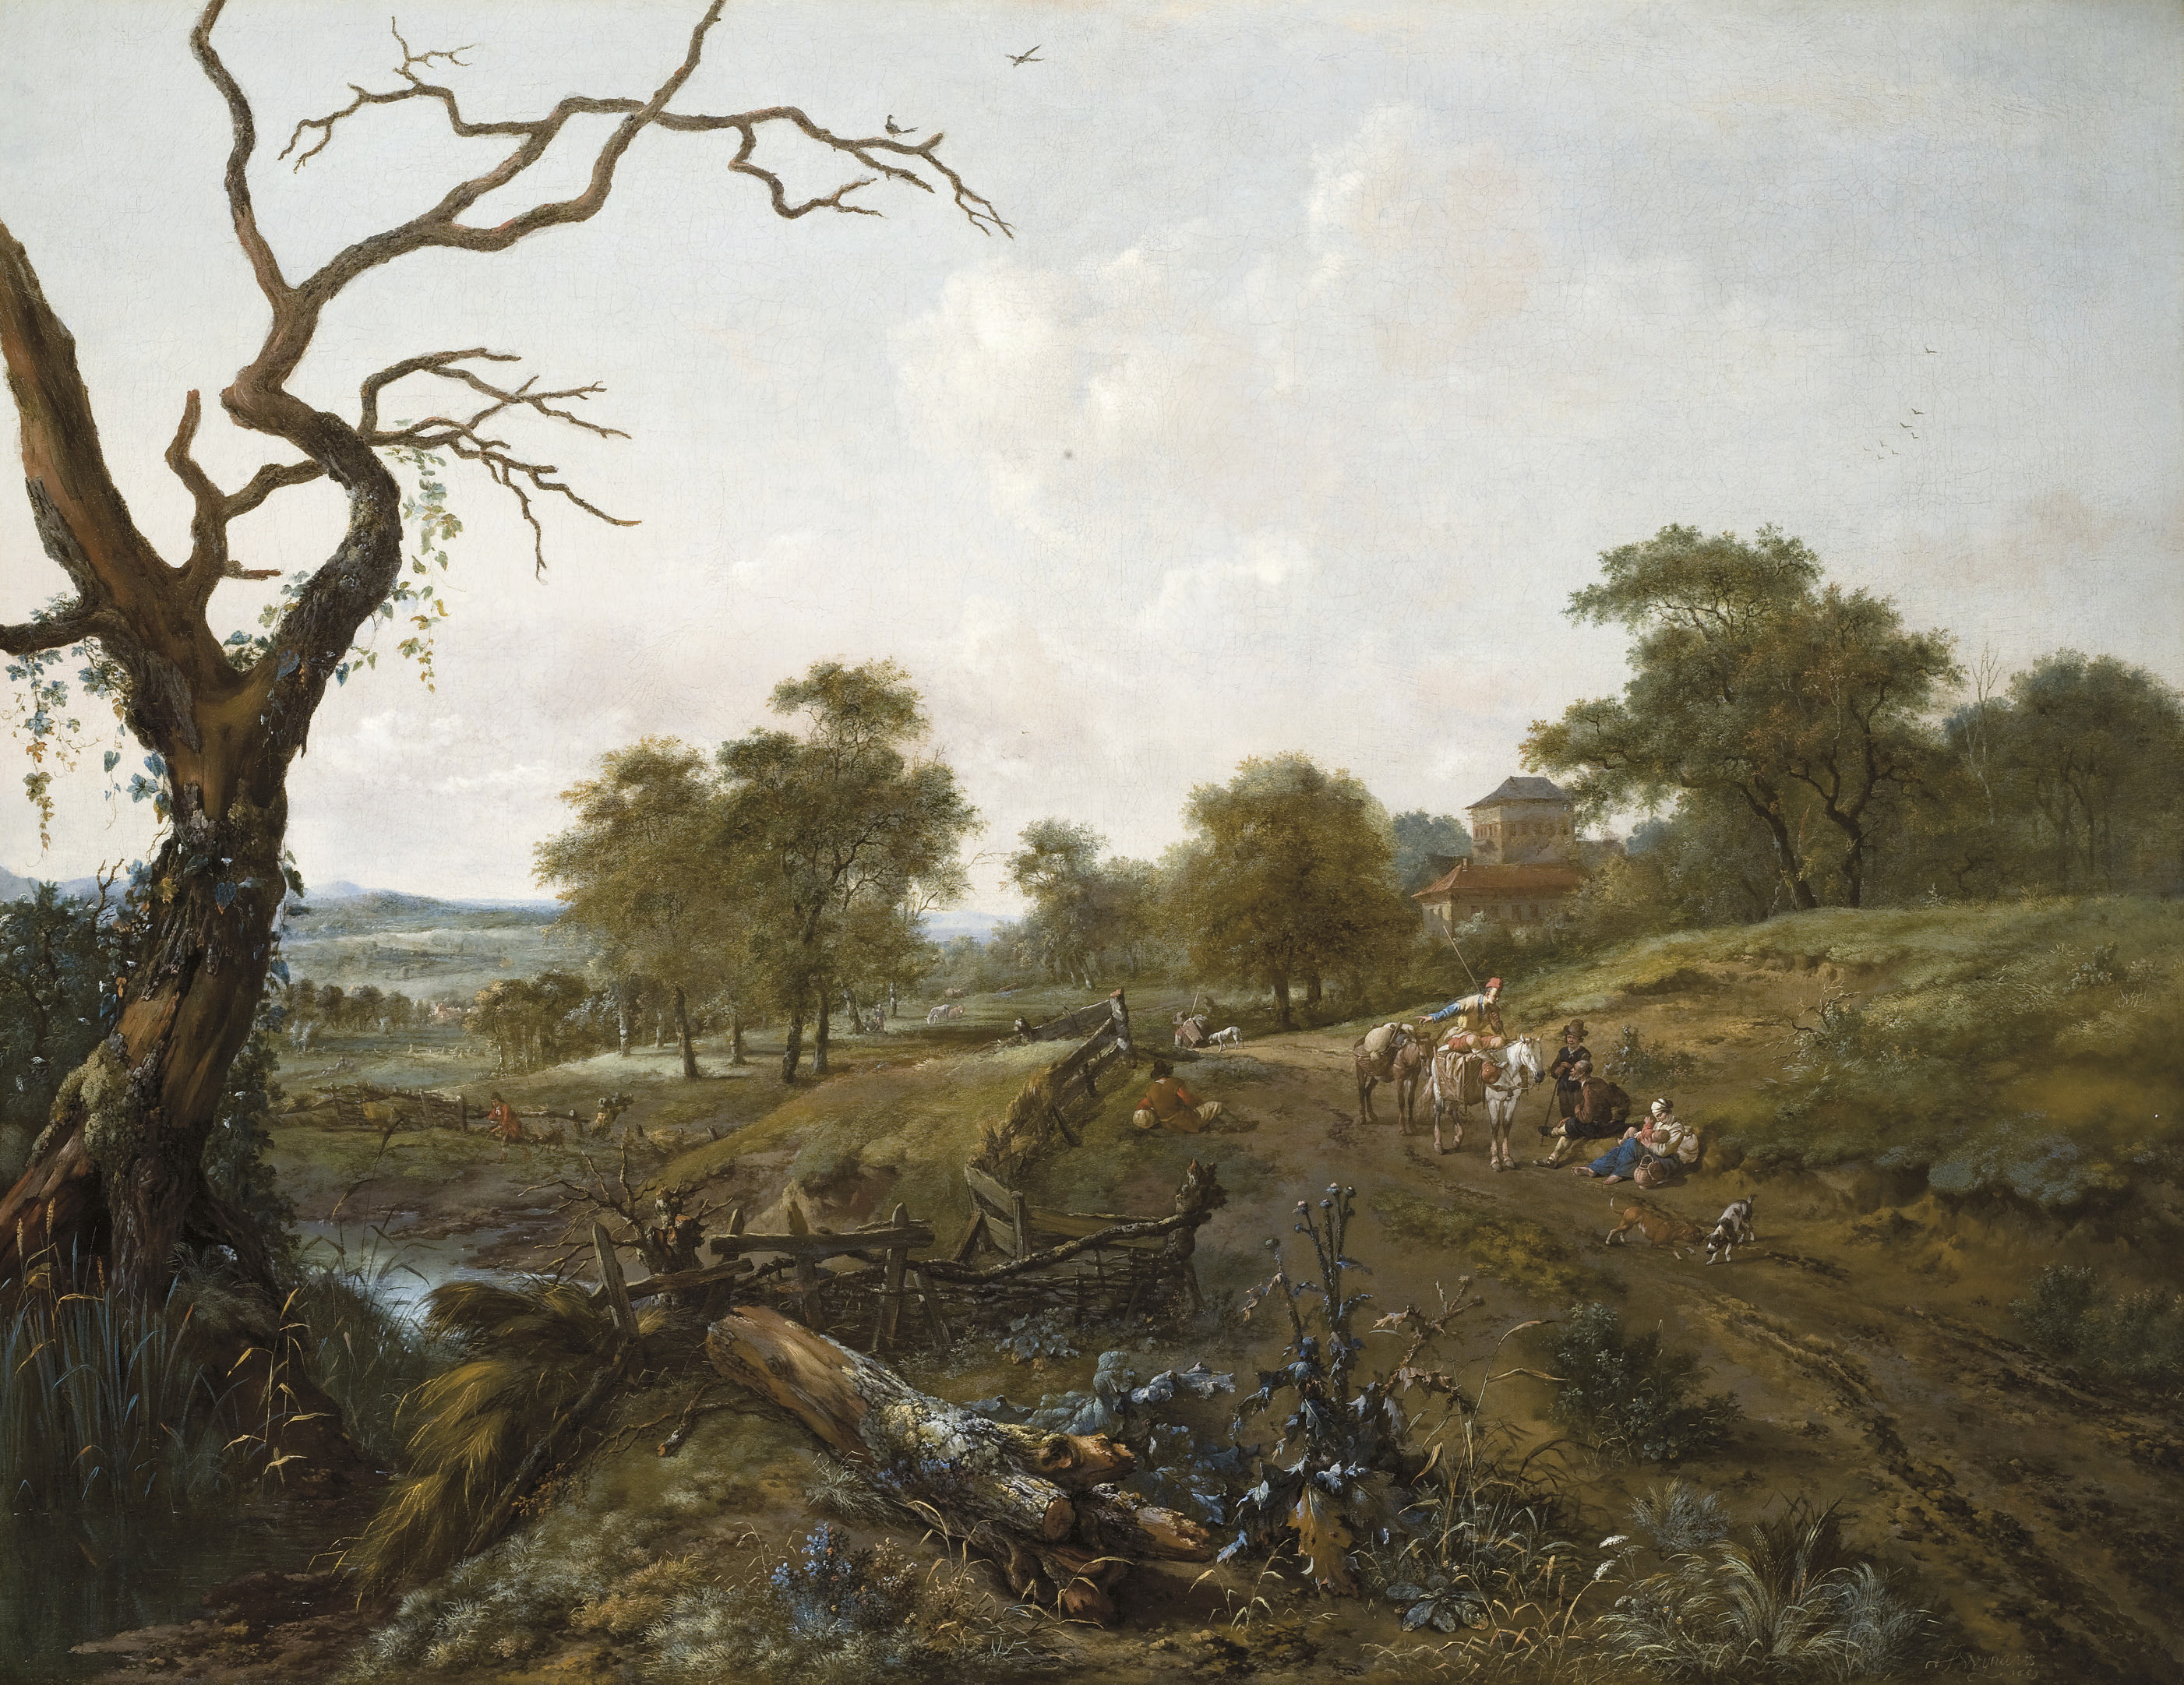 An extensive pastoral landscape with travellers on a path, a boy by a stream and herdsmen watching cattle, a hayfield beyond